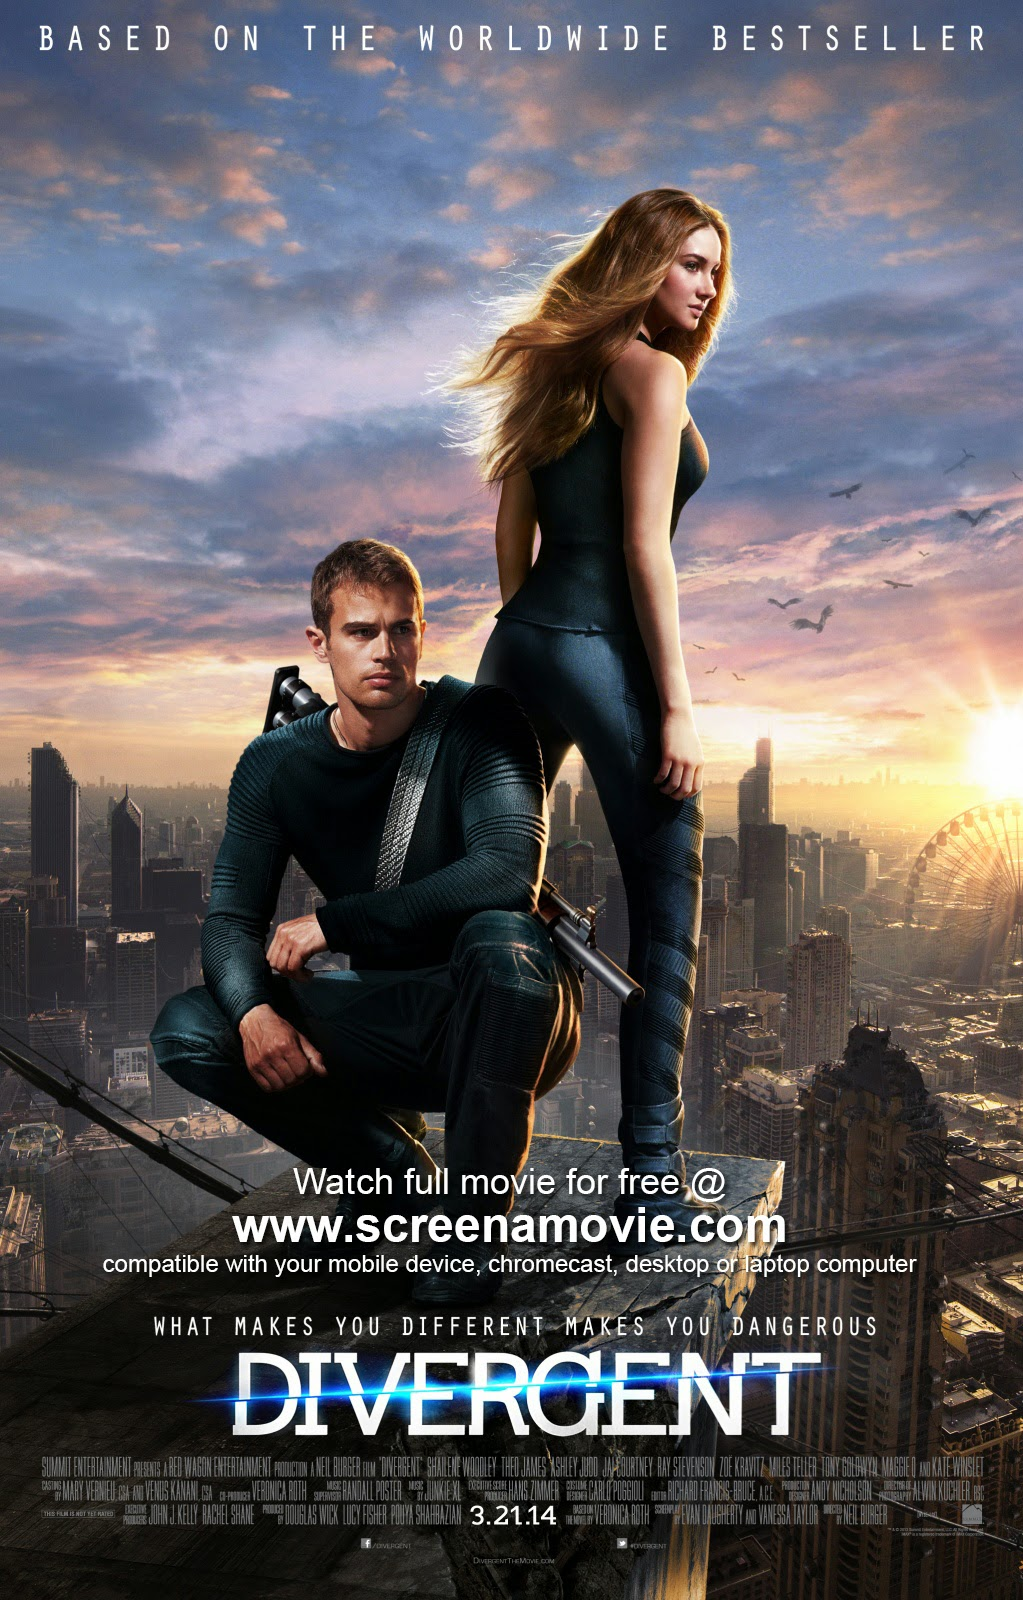 Divergent_2014_@screenamovie